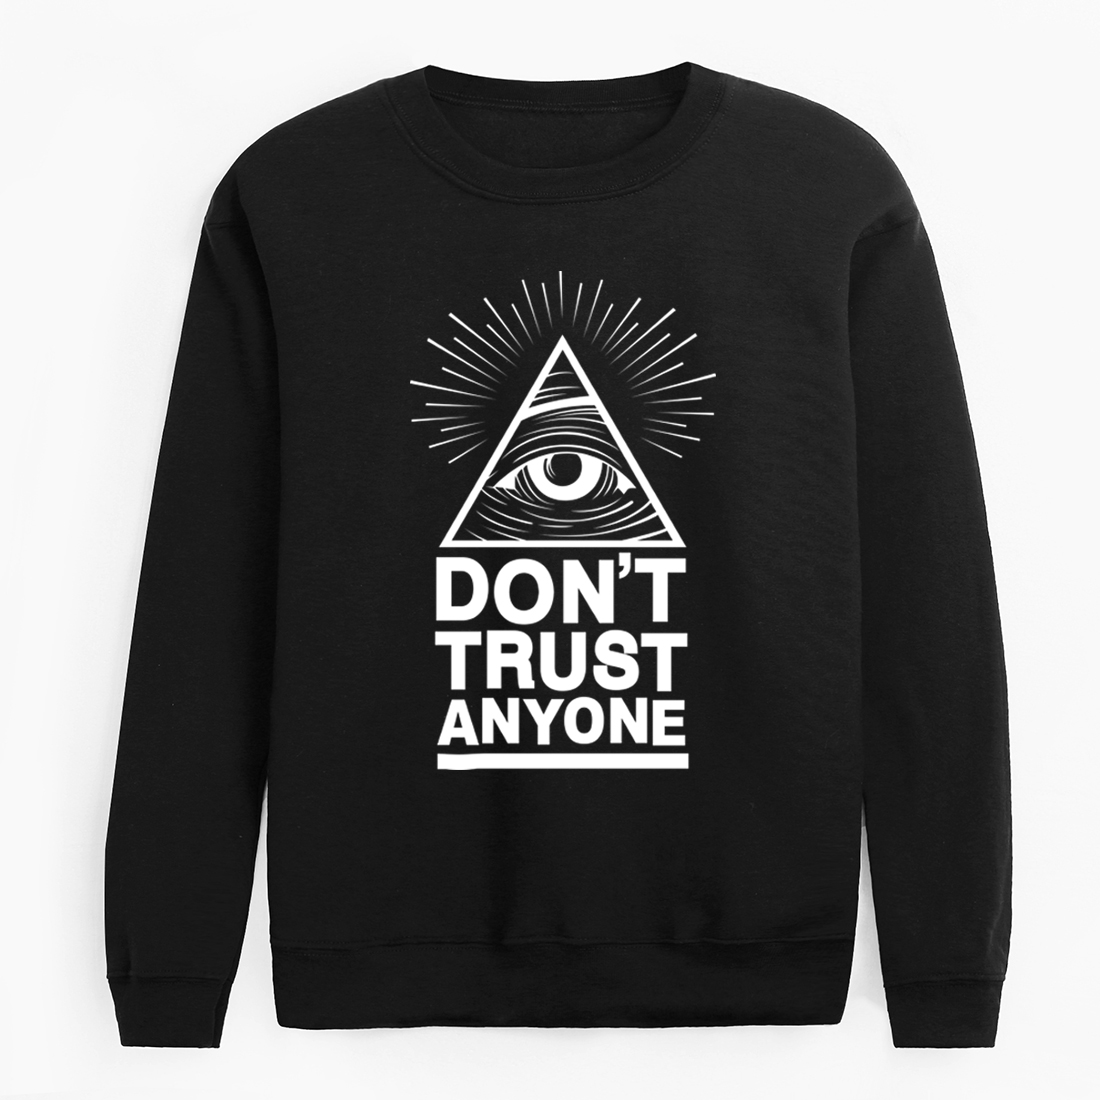 2020 New Harajuku Clothing Man Dont Trust Anyone Autumn Winter Fleece Hoodies Illuminati All Seeing Eye Sweatshirt Men Pullovers